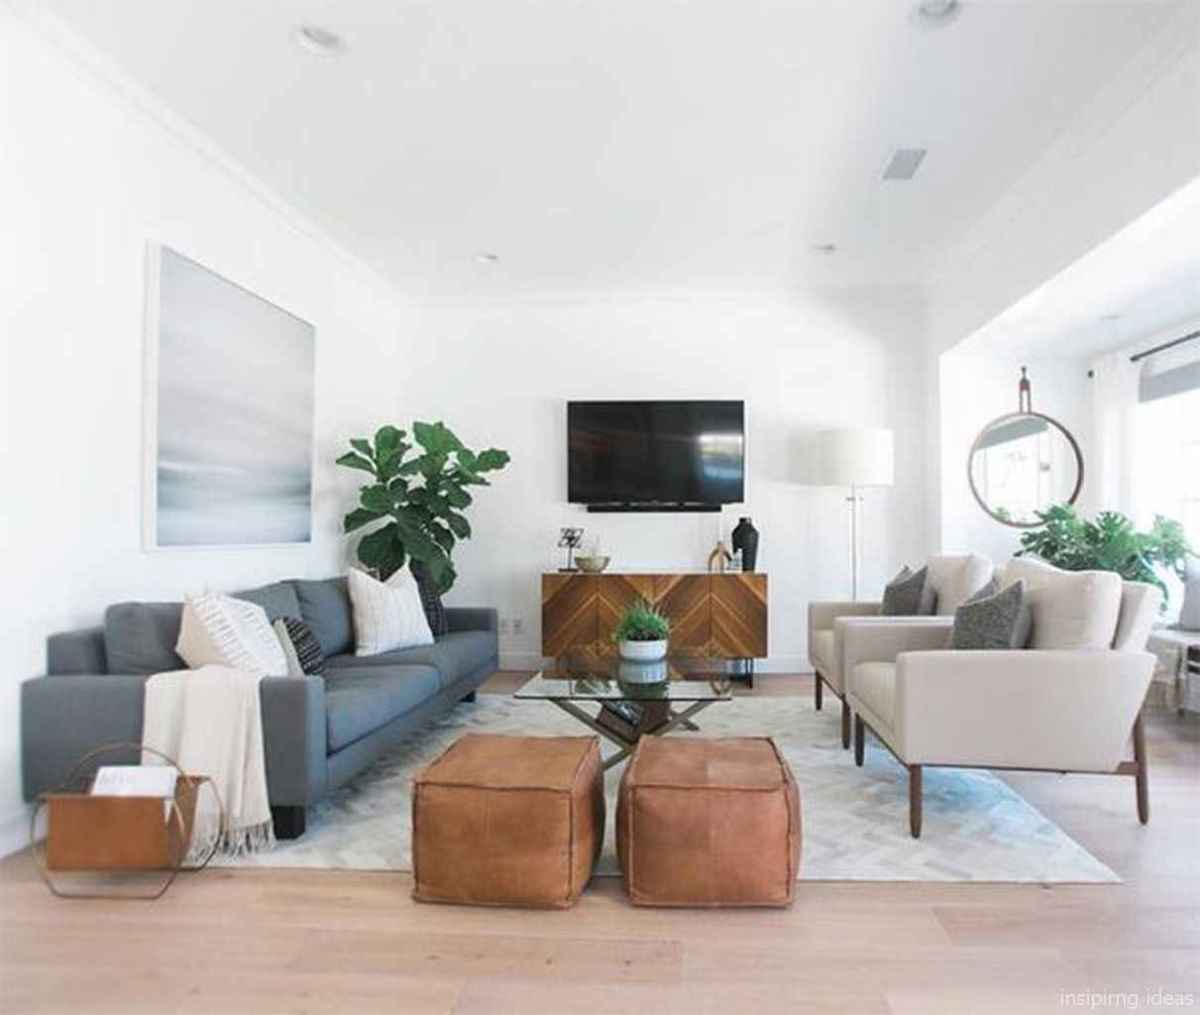 Cozy modern apartment living room decorating ideas on a budget 19